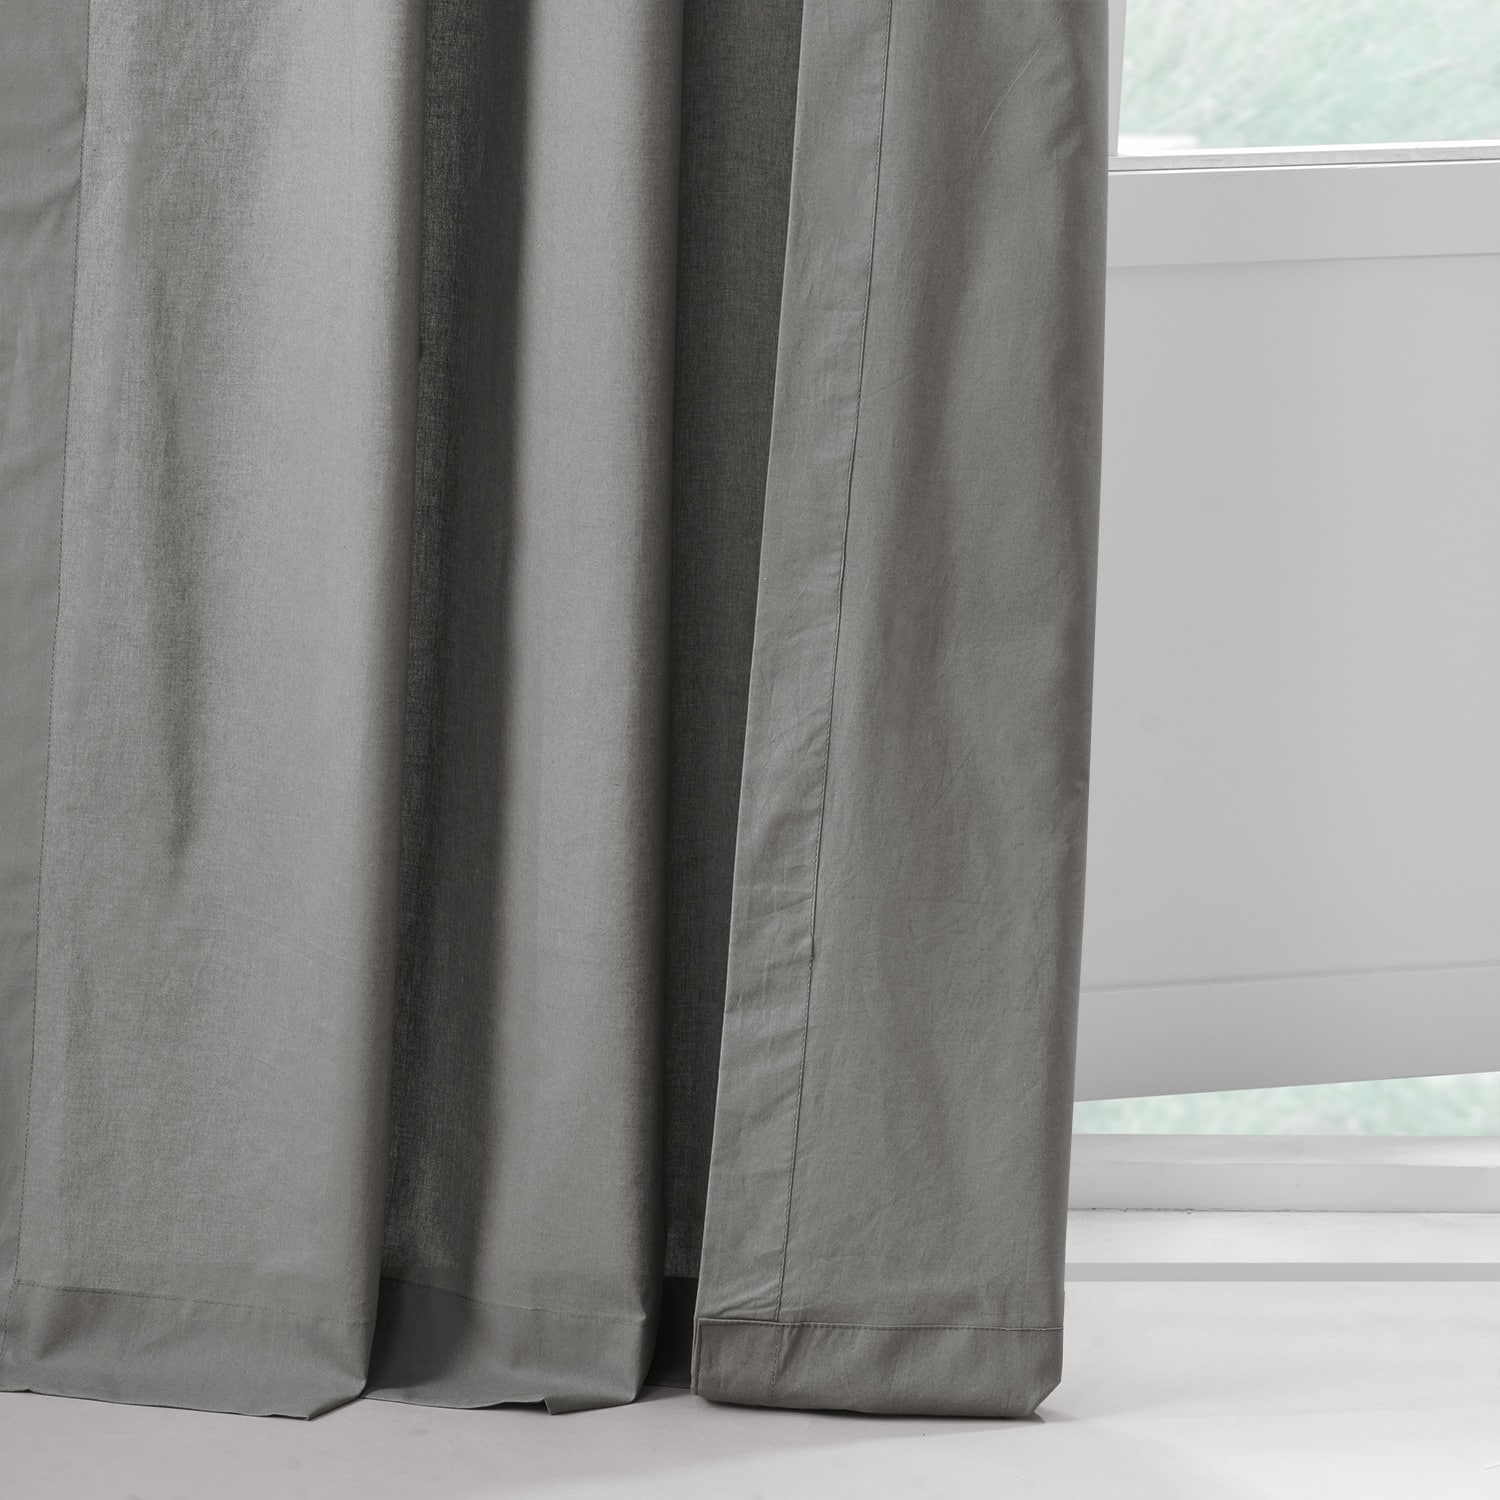 Shady Grey Solid Classic Cotton Semi Sheer Curtain Pair (2 Panels)